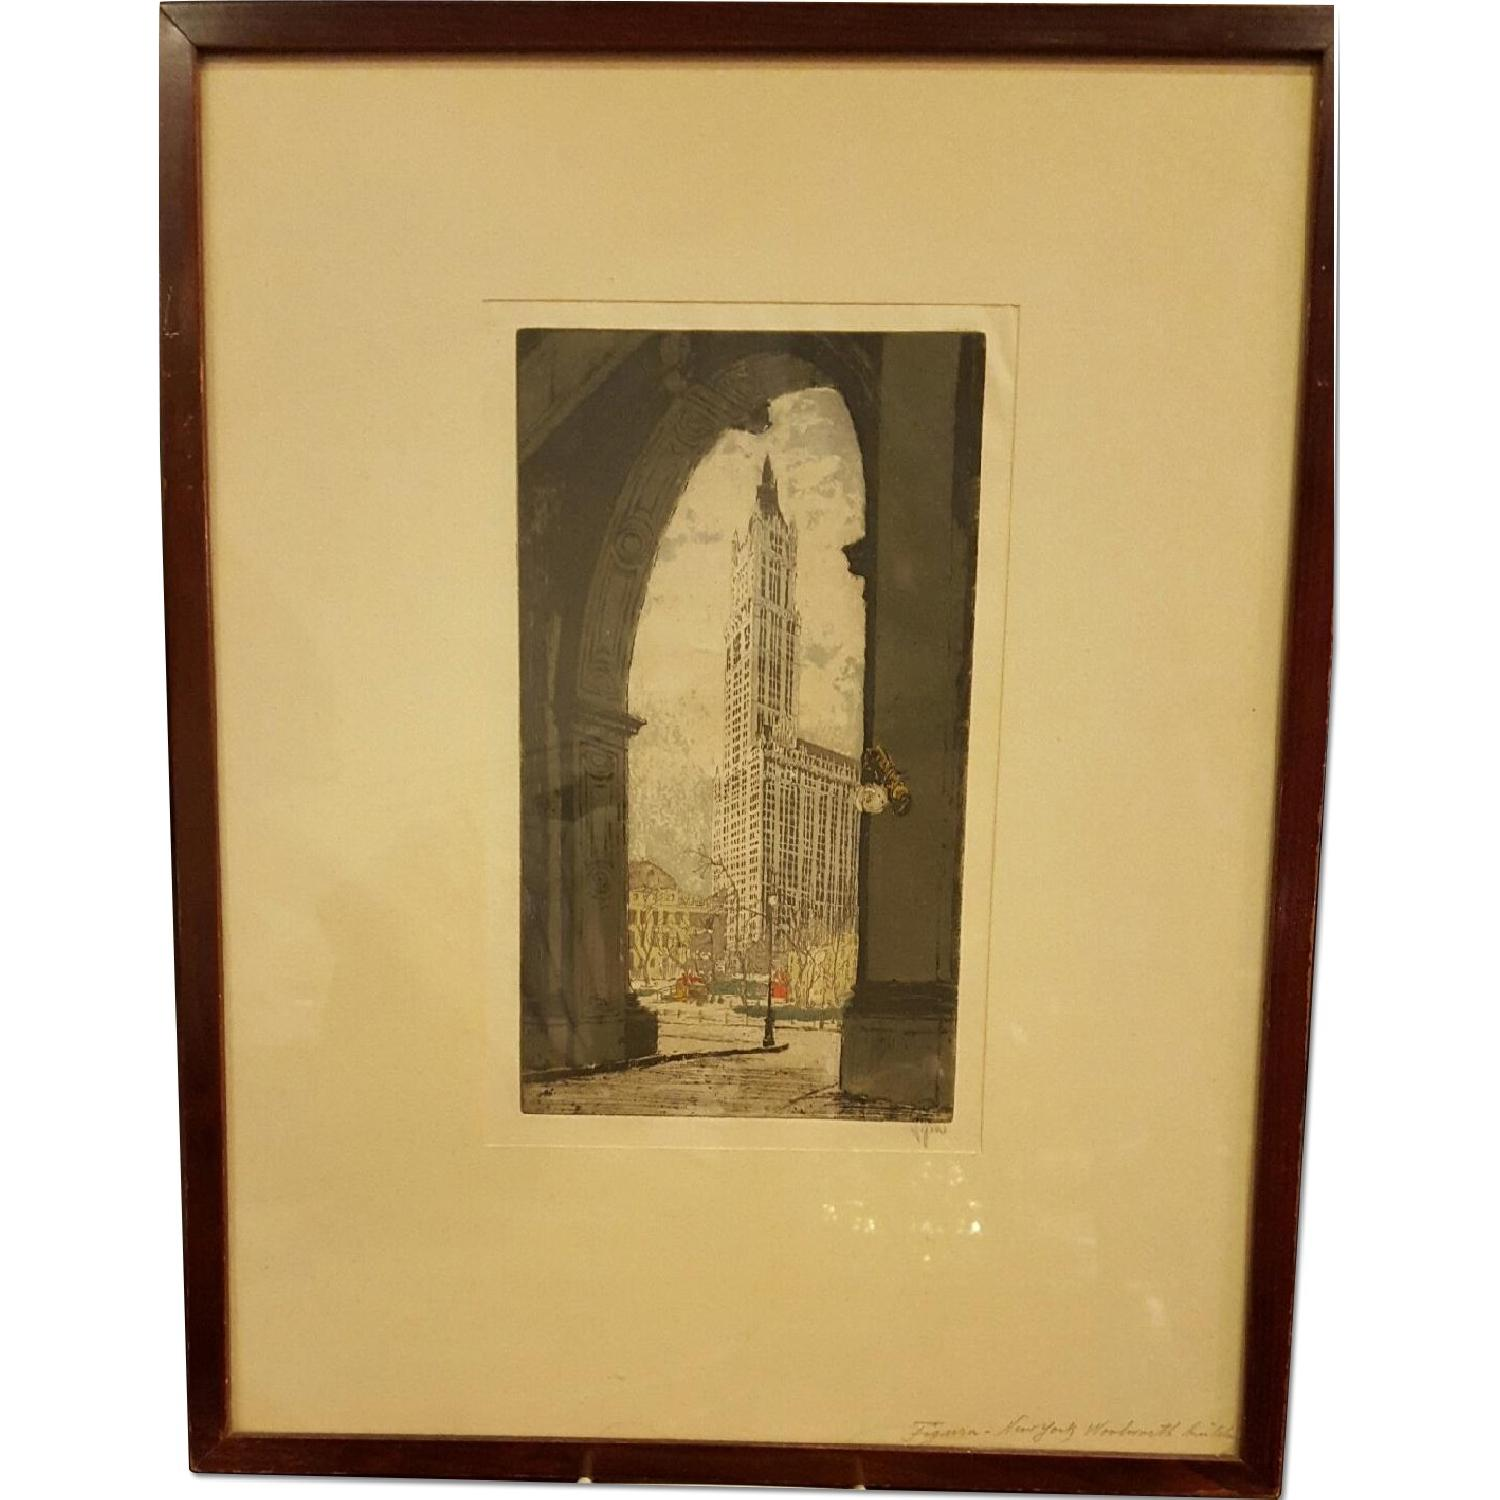 Hans Figura c1930 Etching - The Woolworth Building - image-0